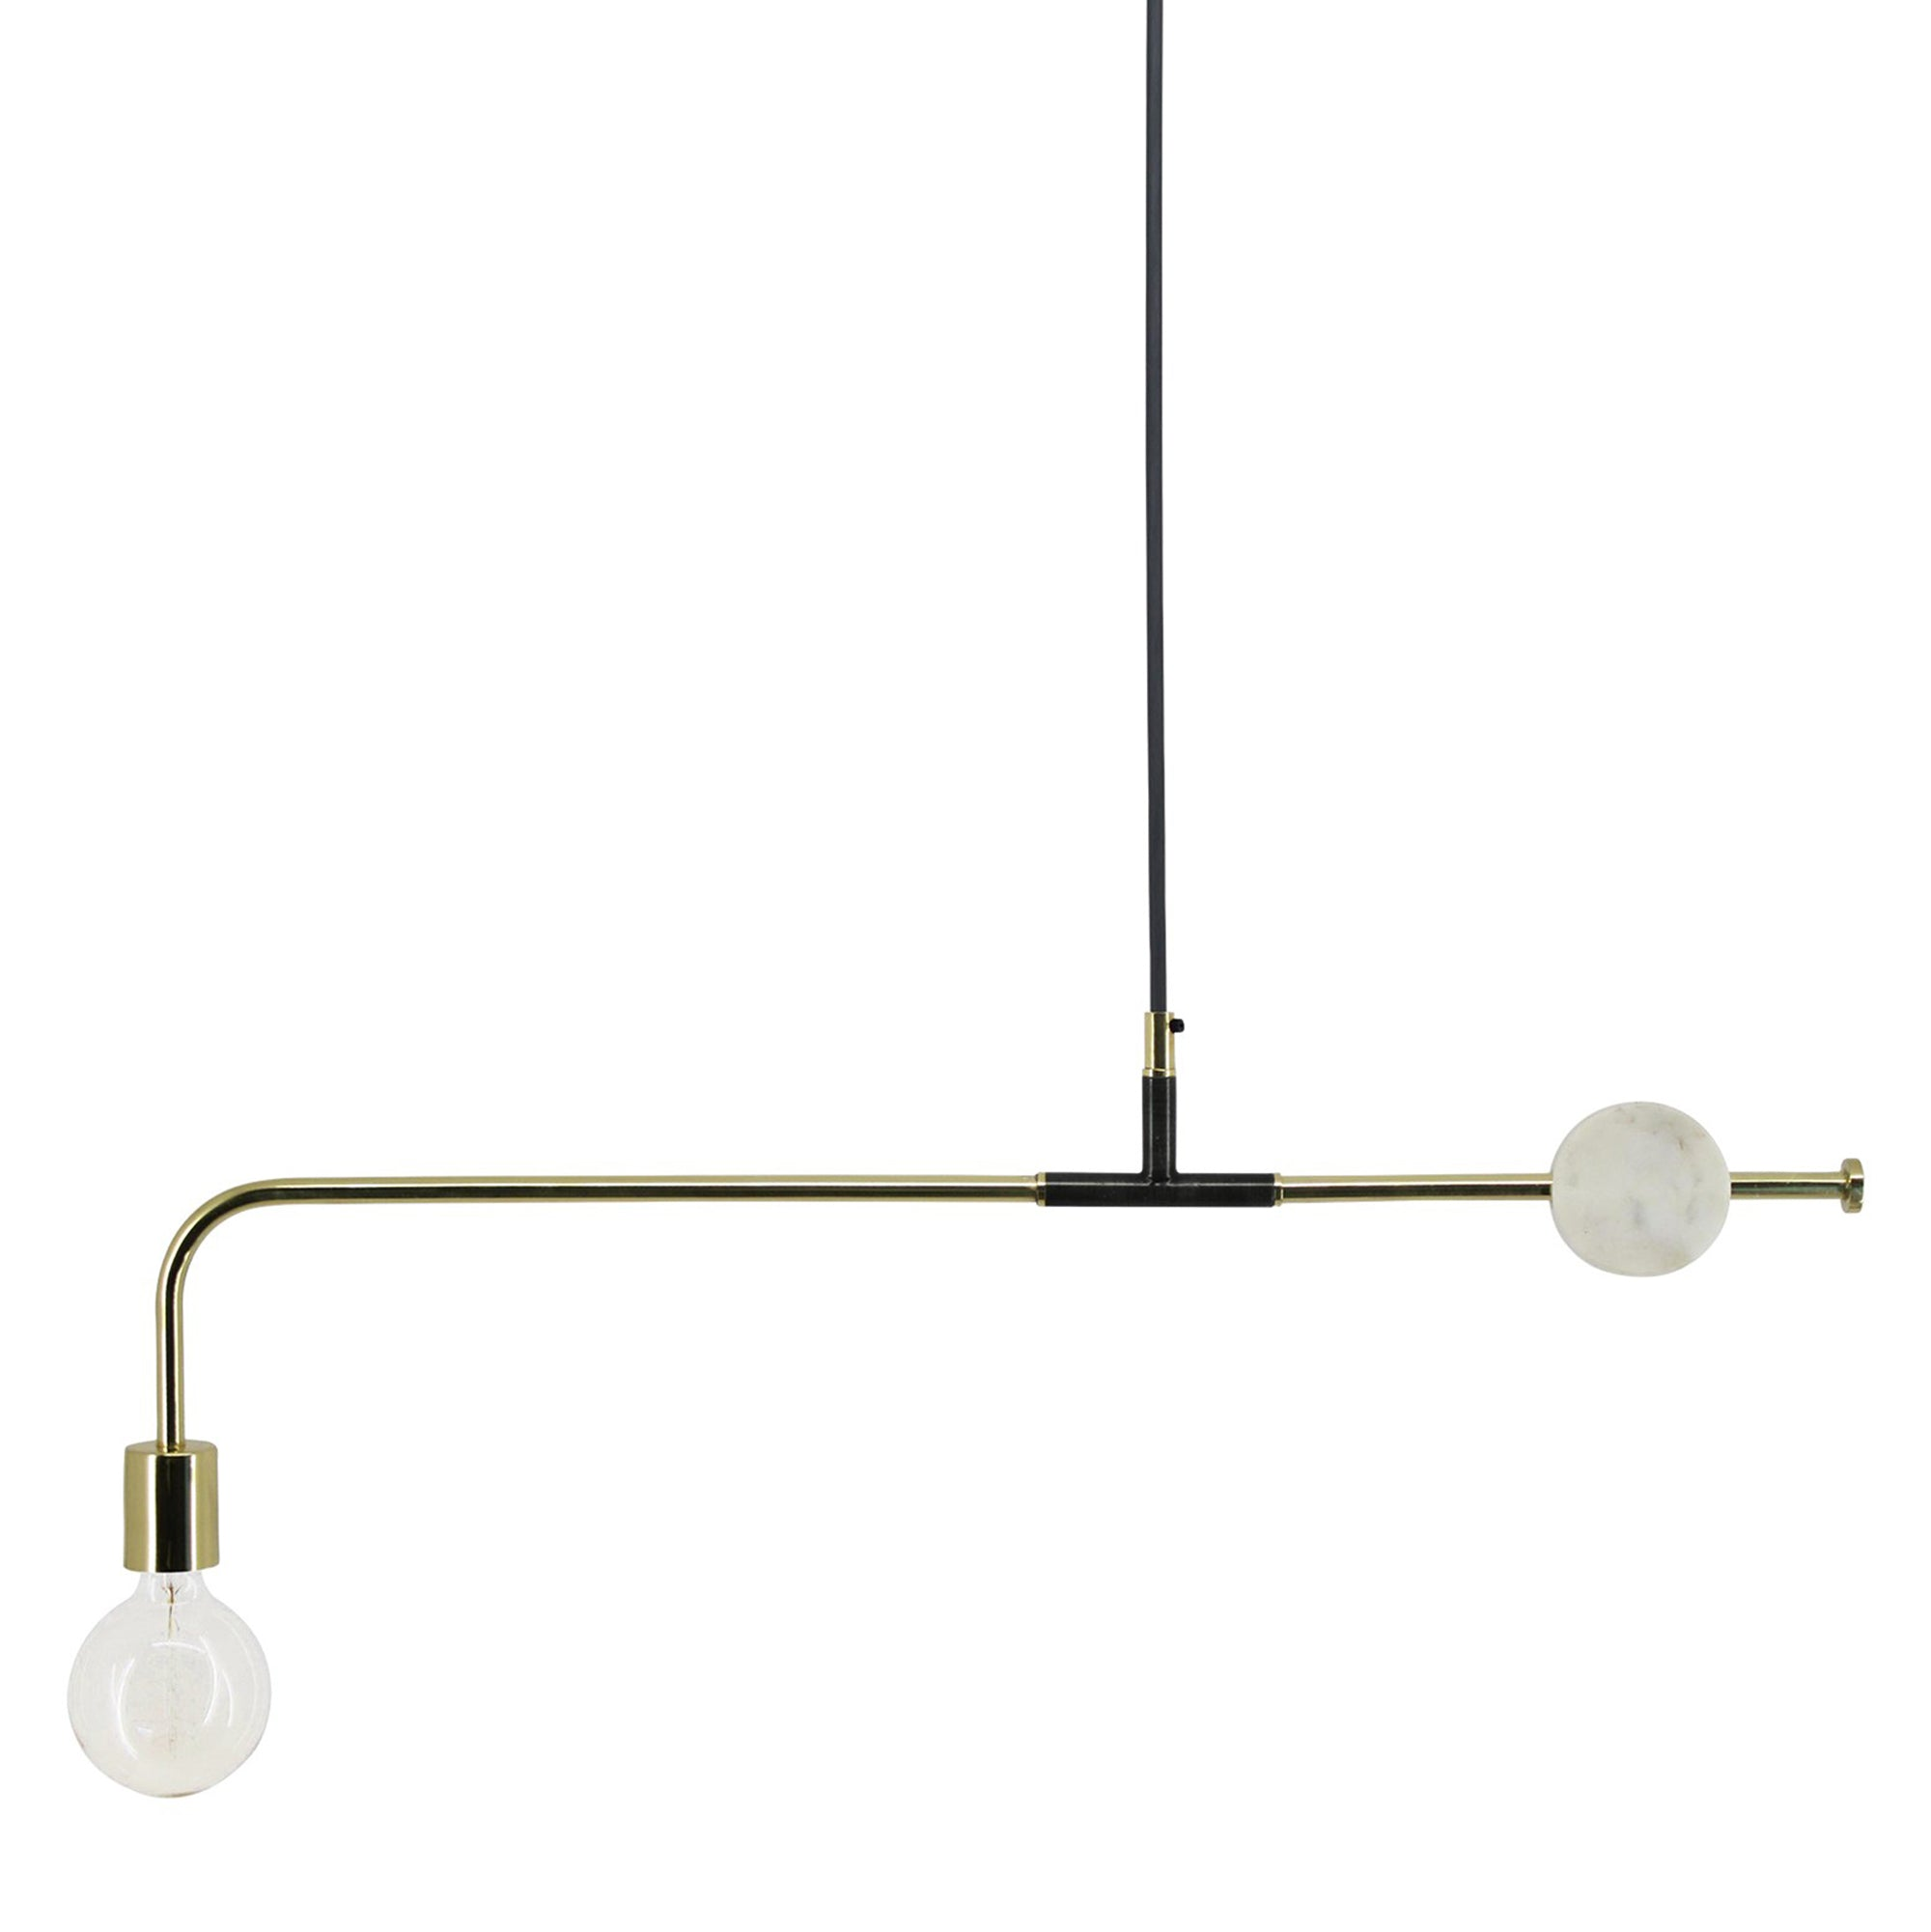 Fairfax Ceiling Fixture - Pendant Light